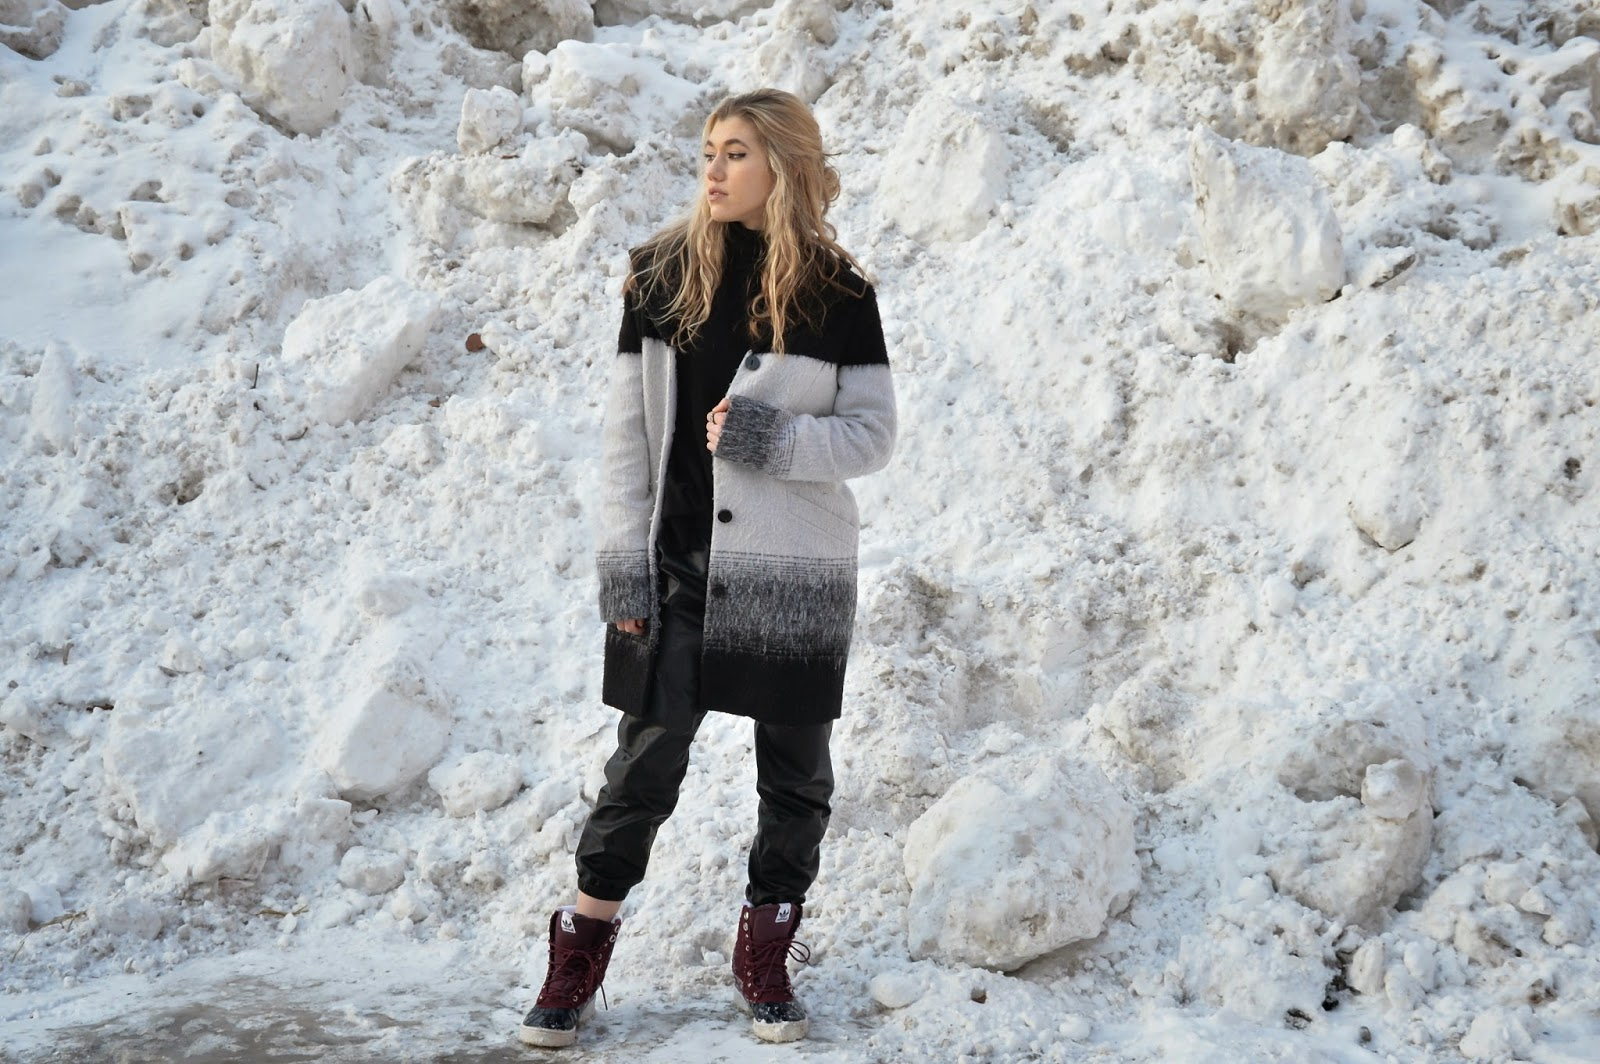 Blogger,sporty,street style, Mermaid Waves,Snow boots,Winter Coat, Chicago